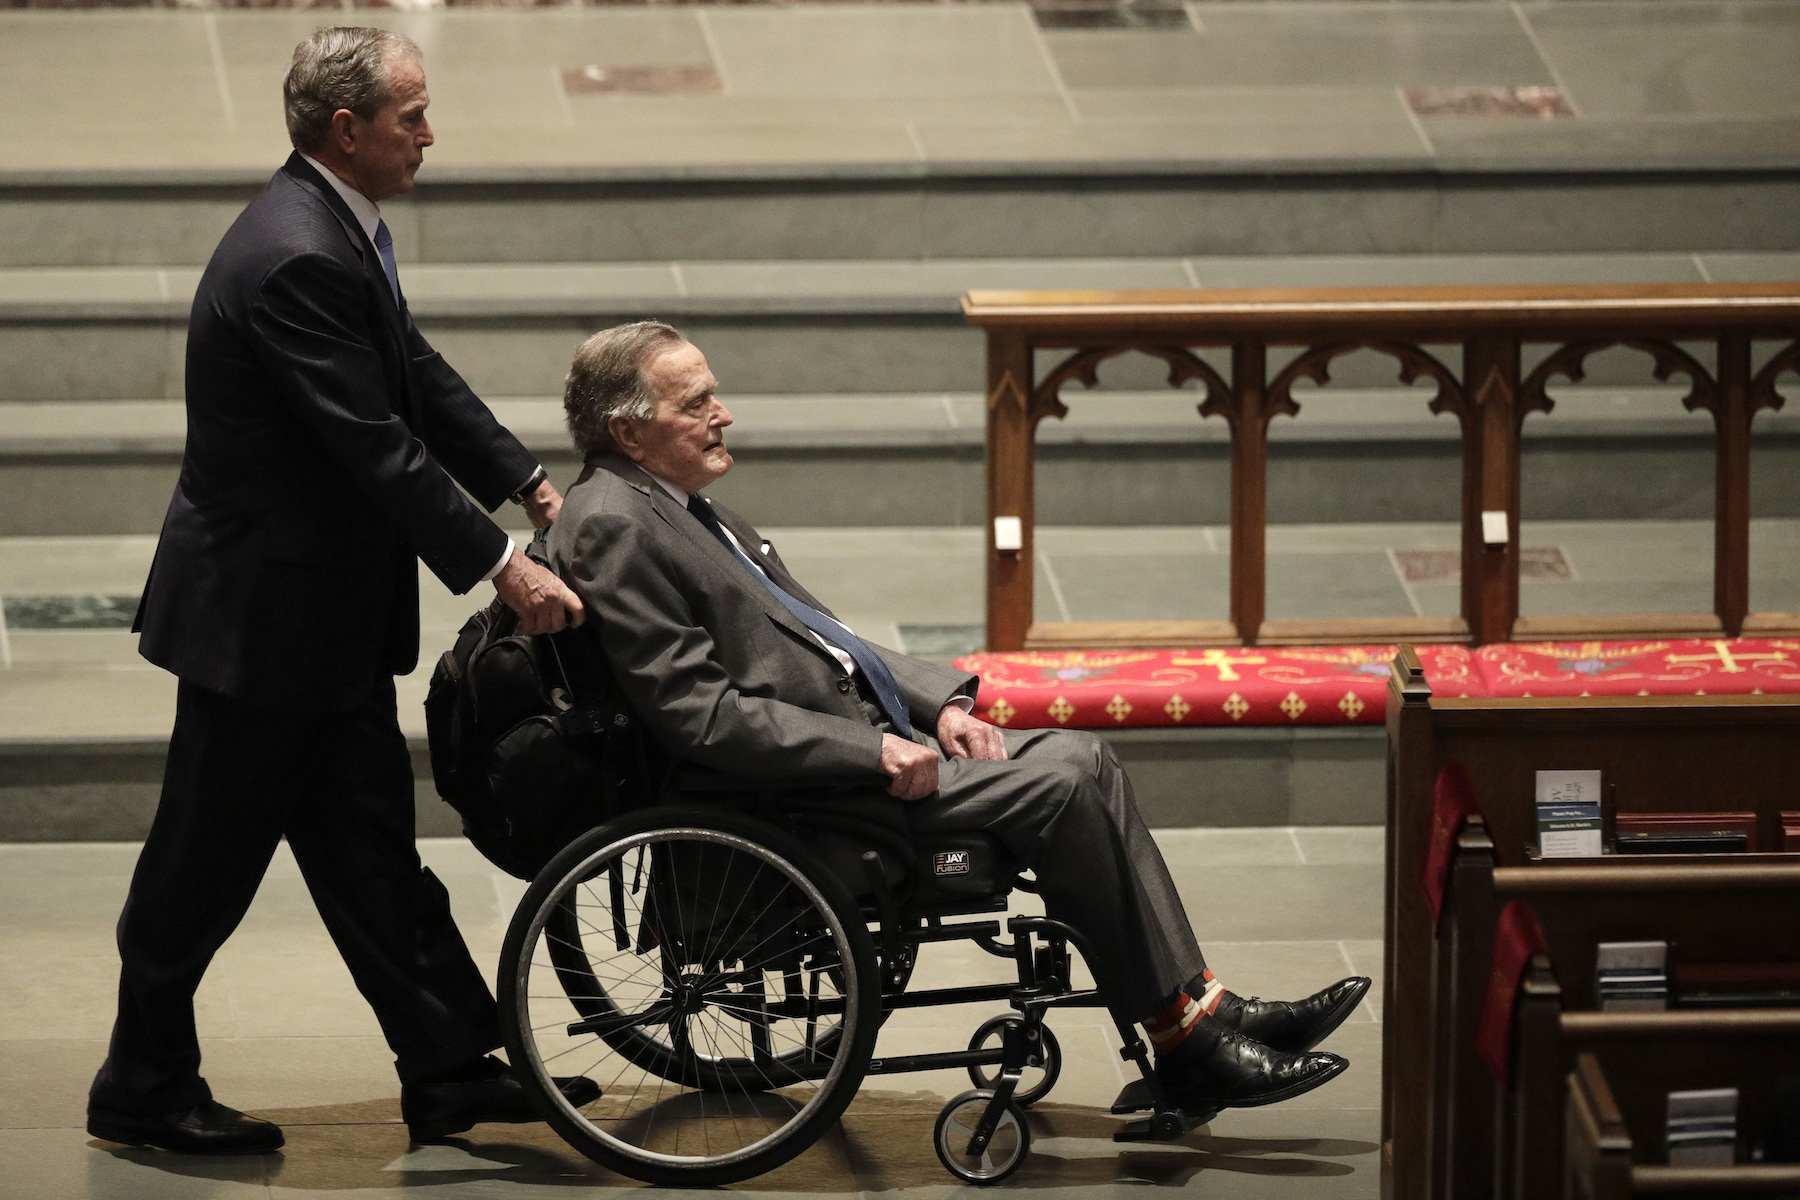 <div class='meta'><div class='origin-logo' data-origin='AP'></div><span class='caption-text' data-credit='AP Photo/David J. Phillip'>Former Presidents George W. Bush, left, and George H.W. Bush arrive at St. Martin's Episcopal Church for a funeral service for former first lady Barbara Bush.</span></div>